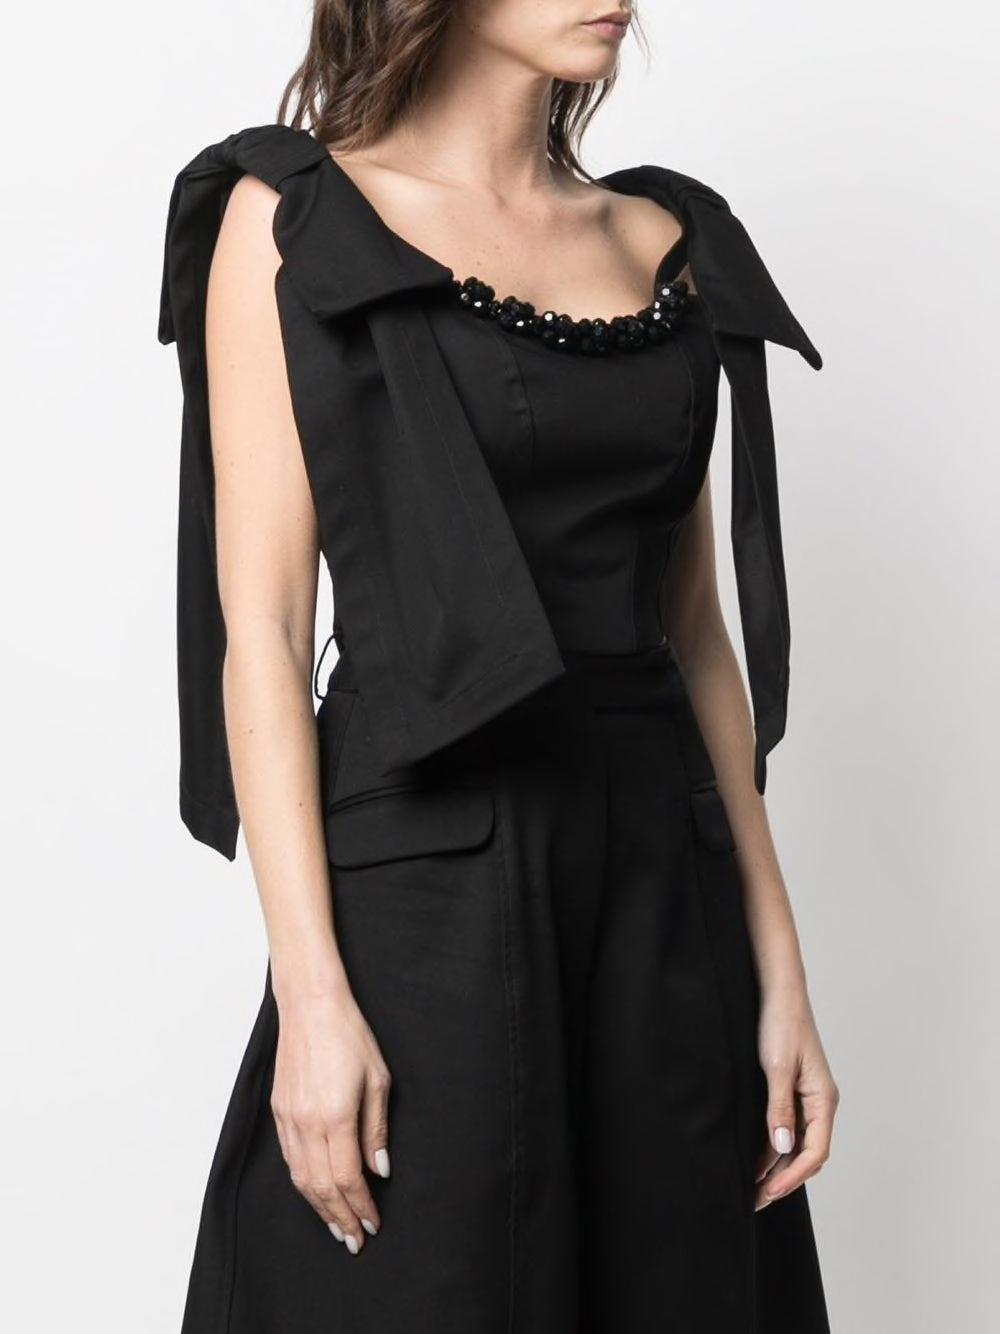 SIMONE ROCHA WOMEN EMBELLISHED CORSET TOP WITH SHOULDER BOW